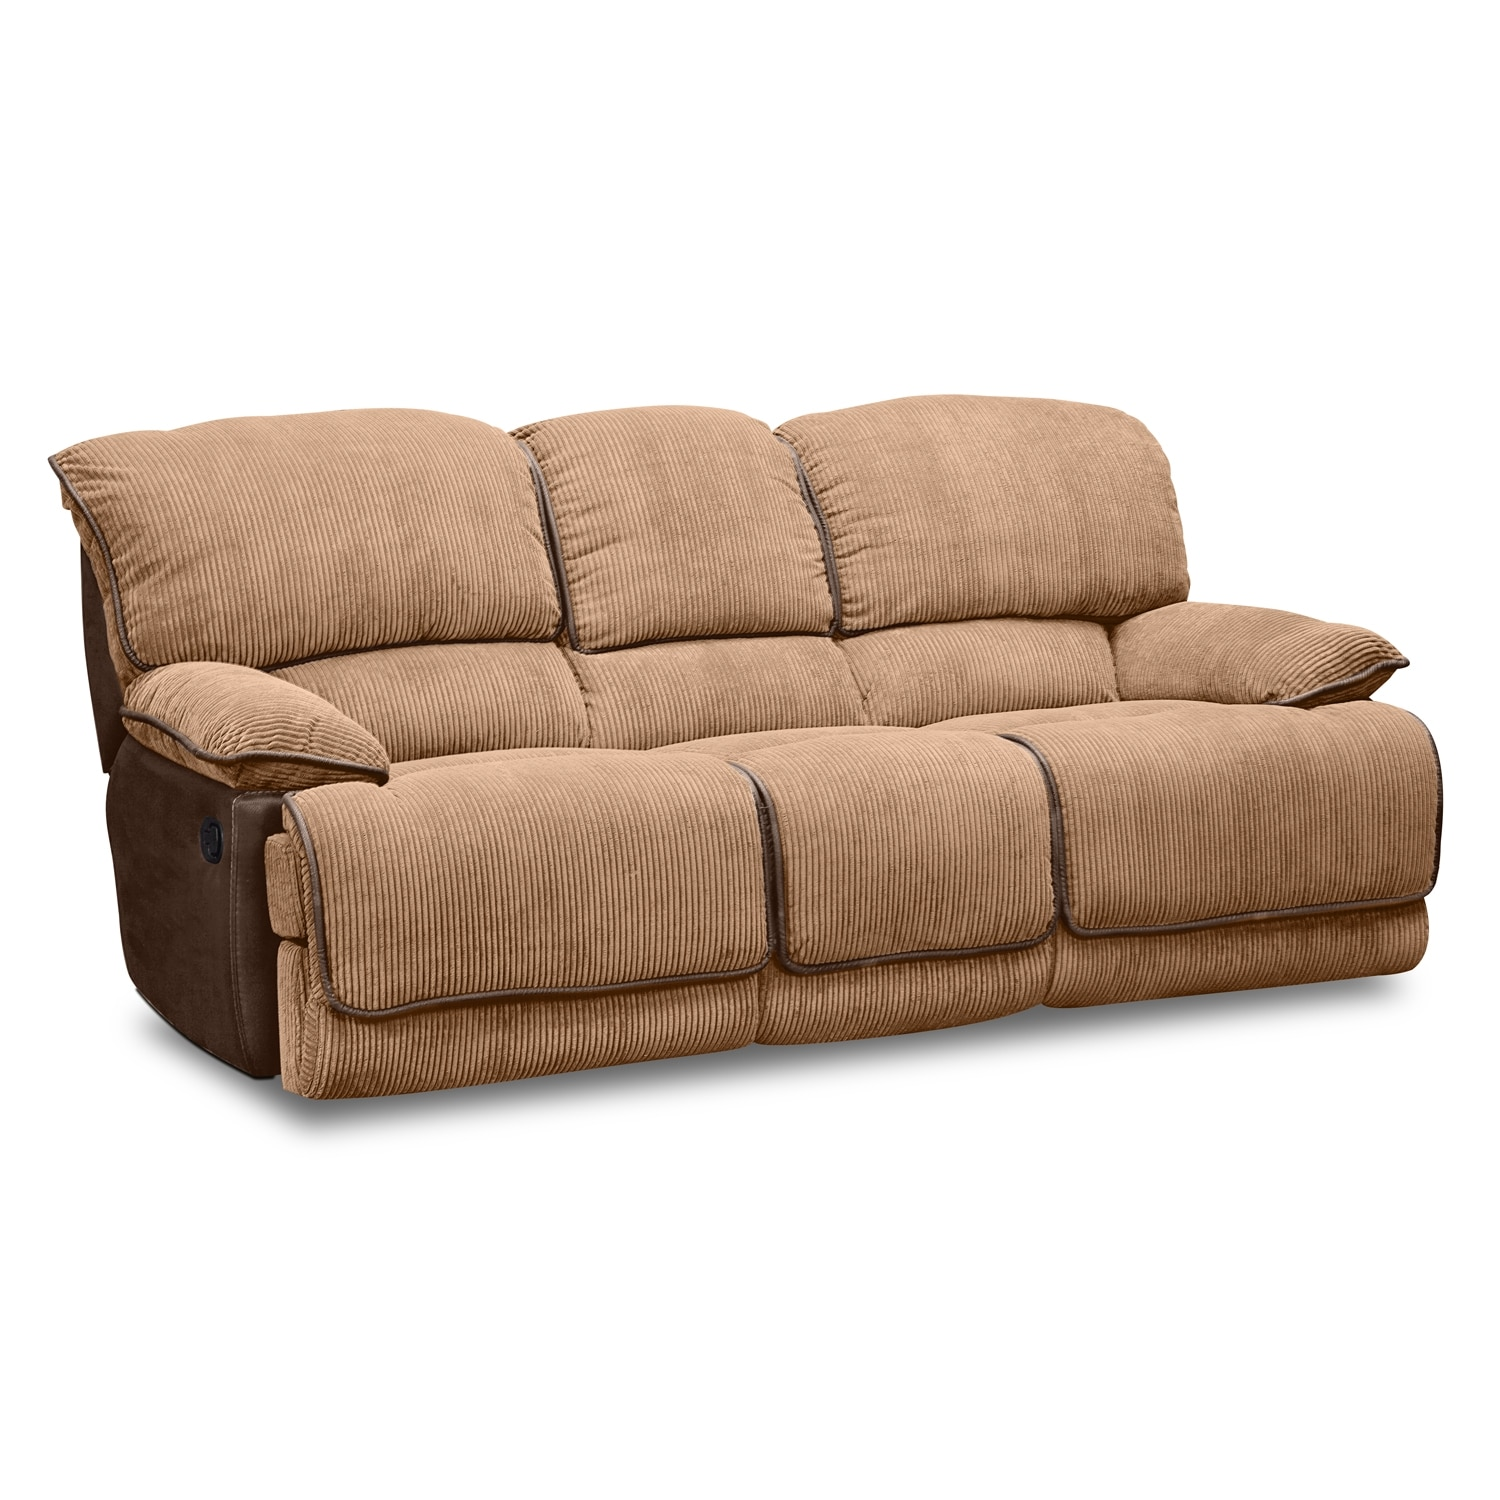 Laguna dual reclining sofa value city furniture Loveseats that recline